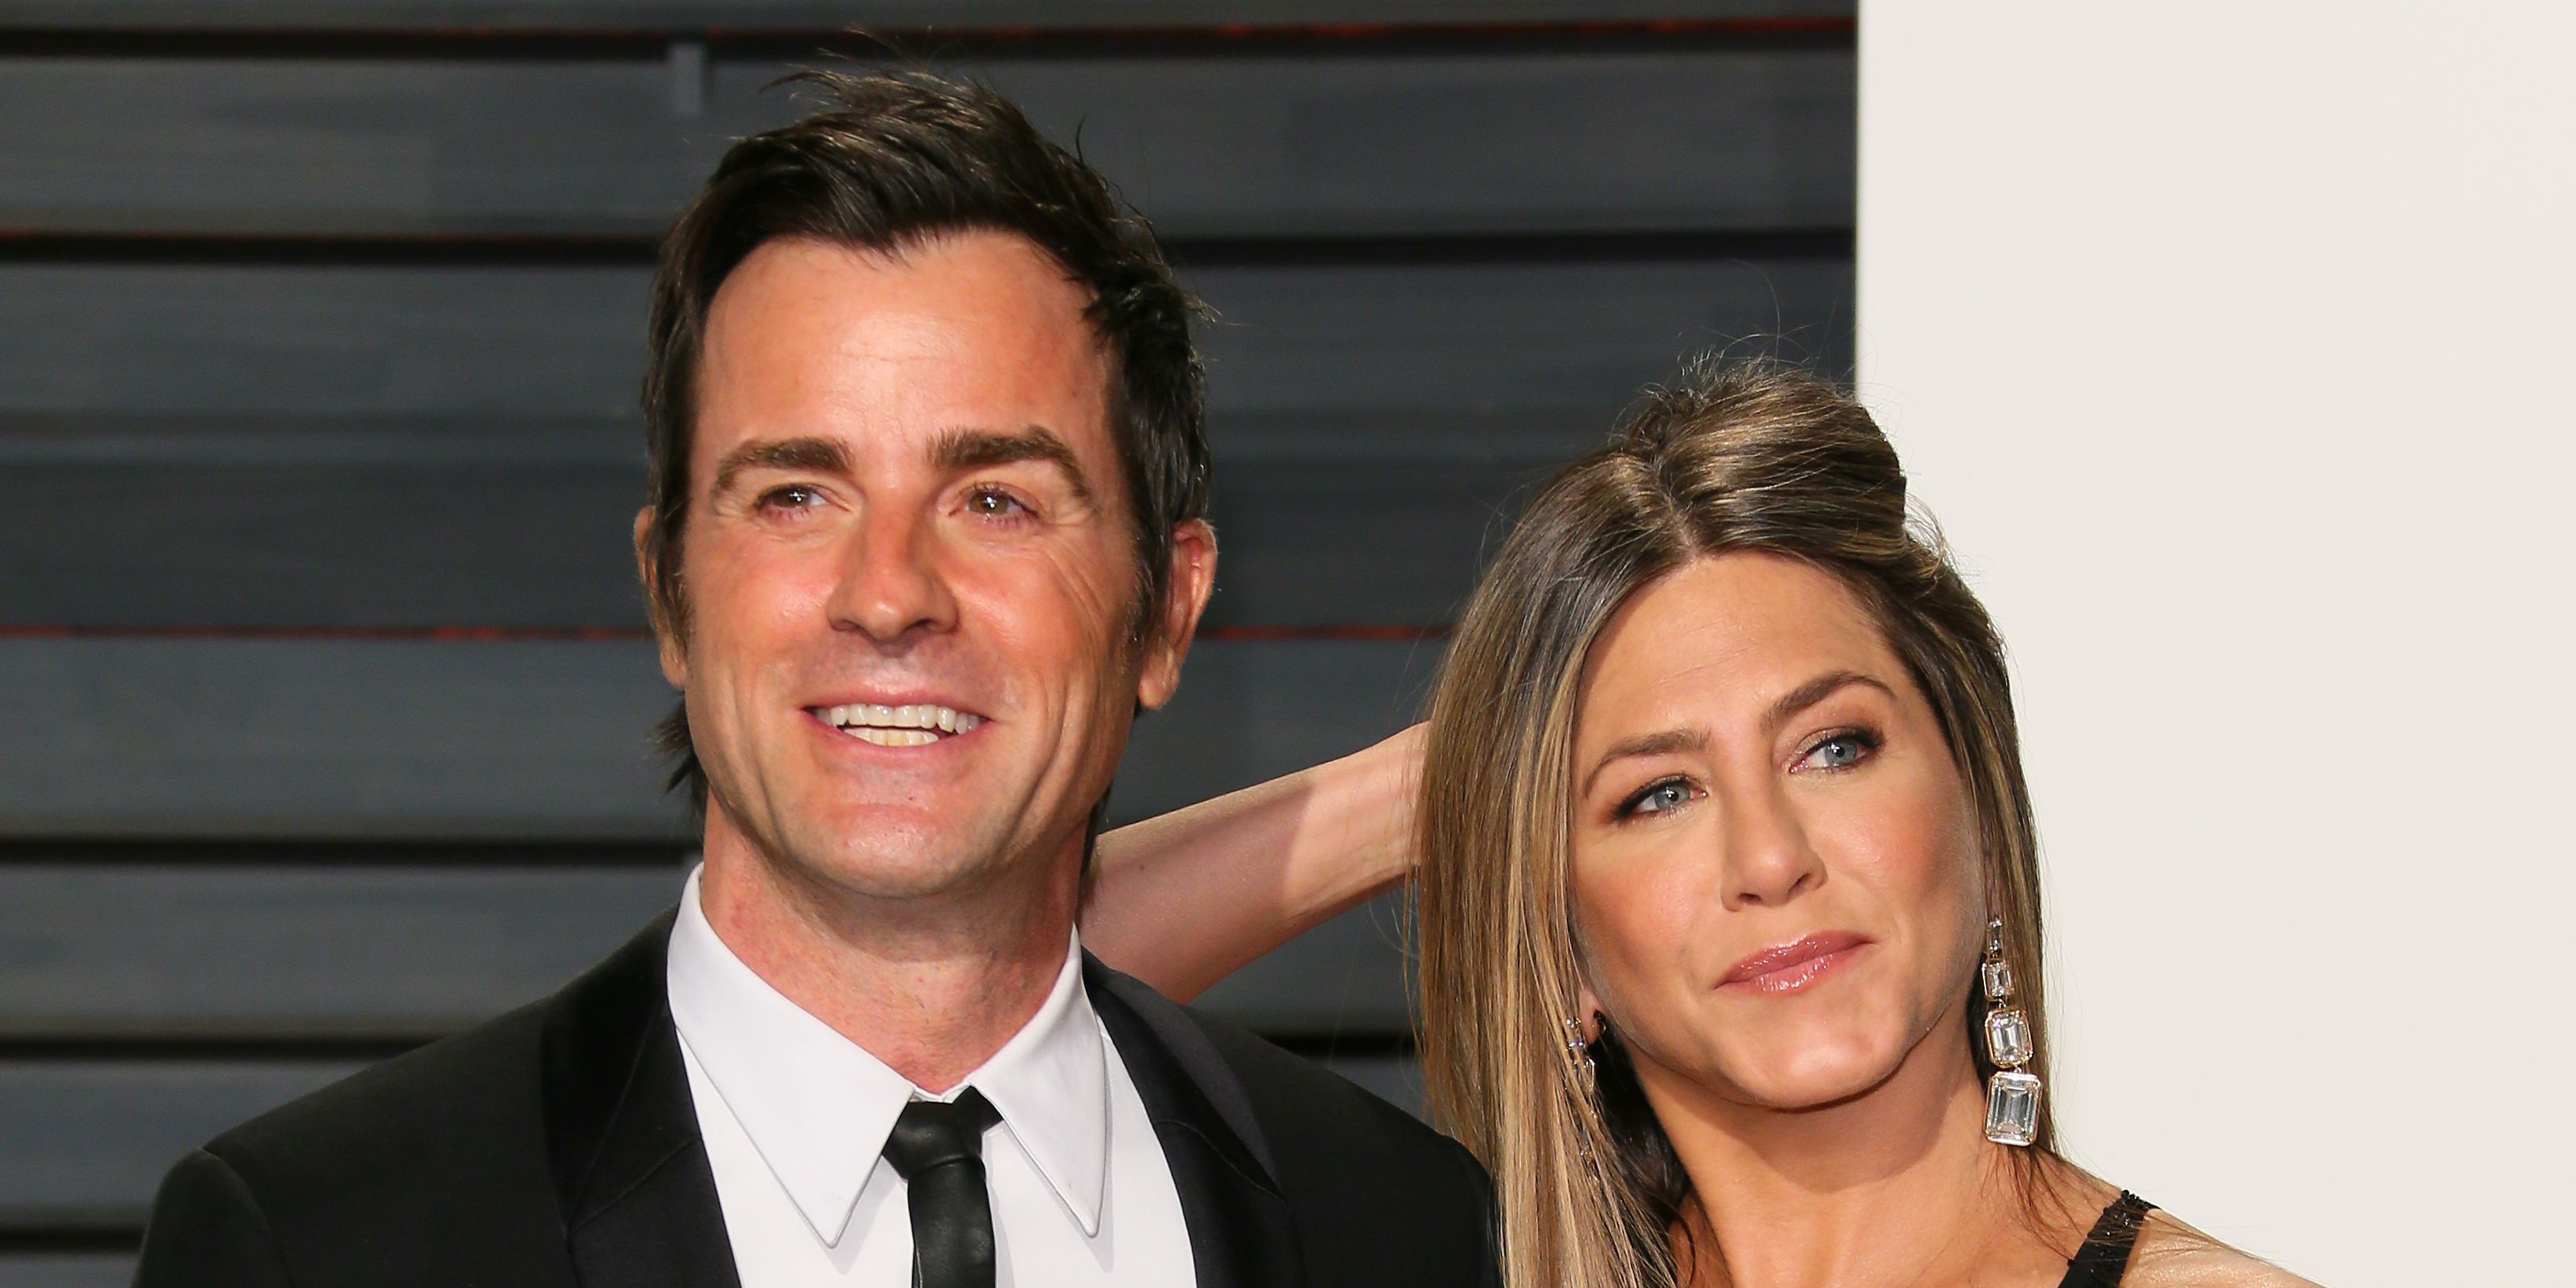 Jennifer Aniston's Ex-Husband Justin Theroux Just Sent Her a Gushy Birthday Message